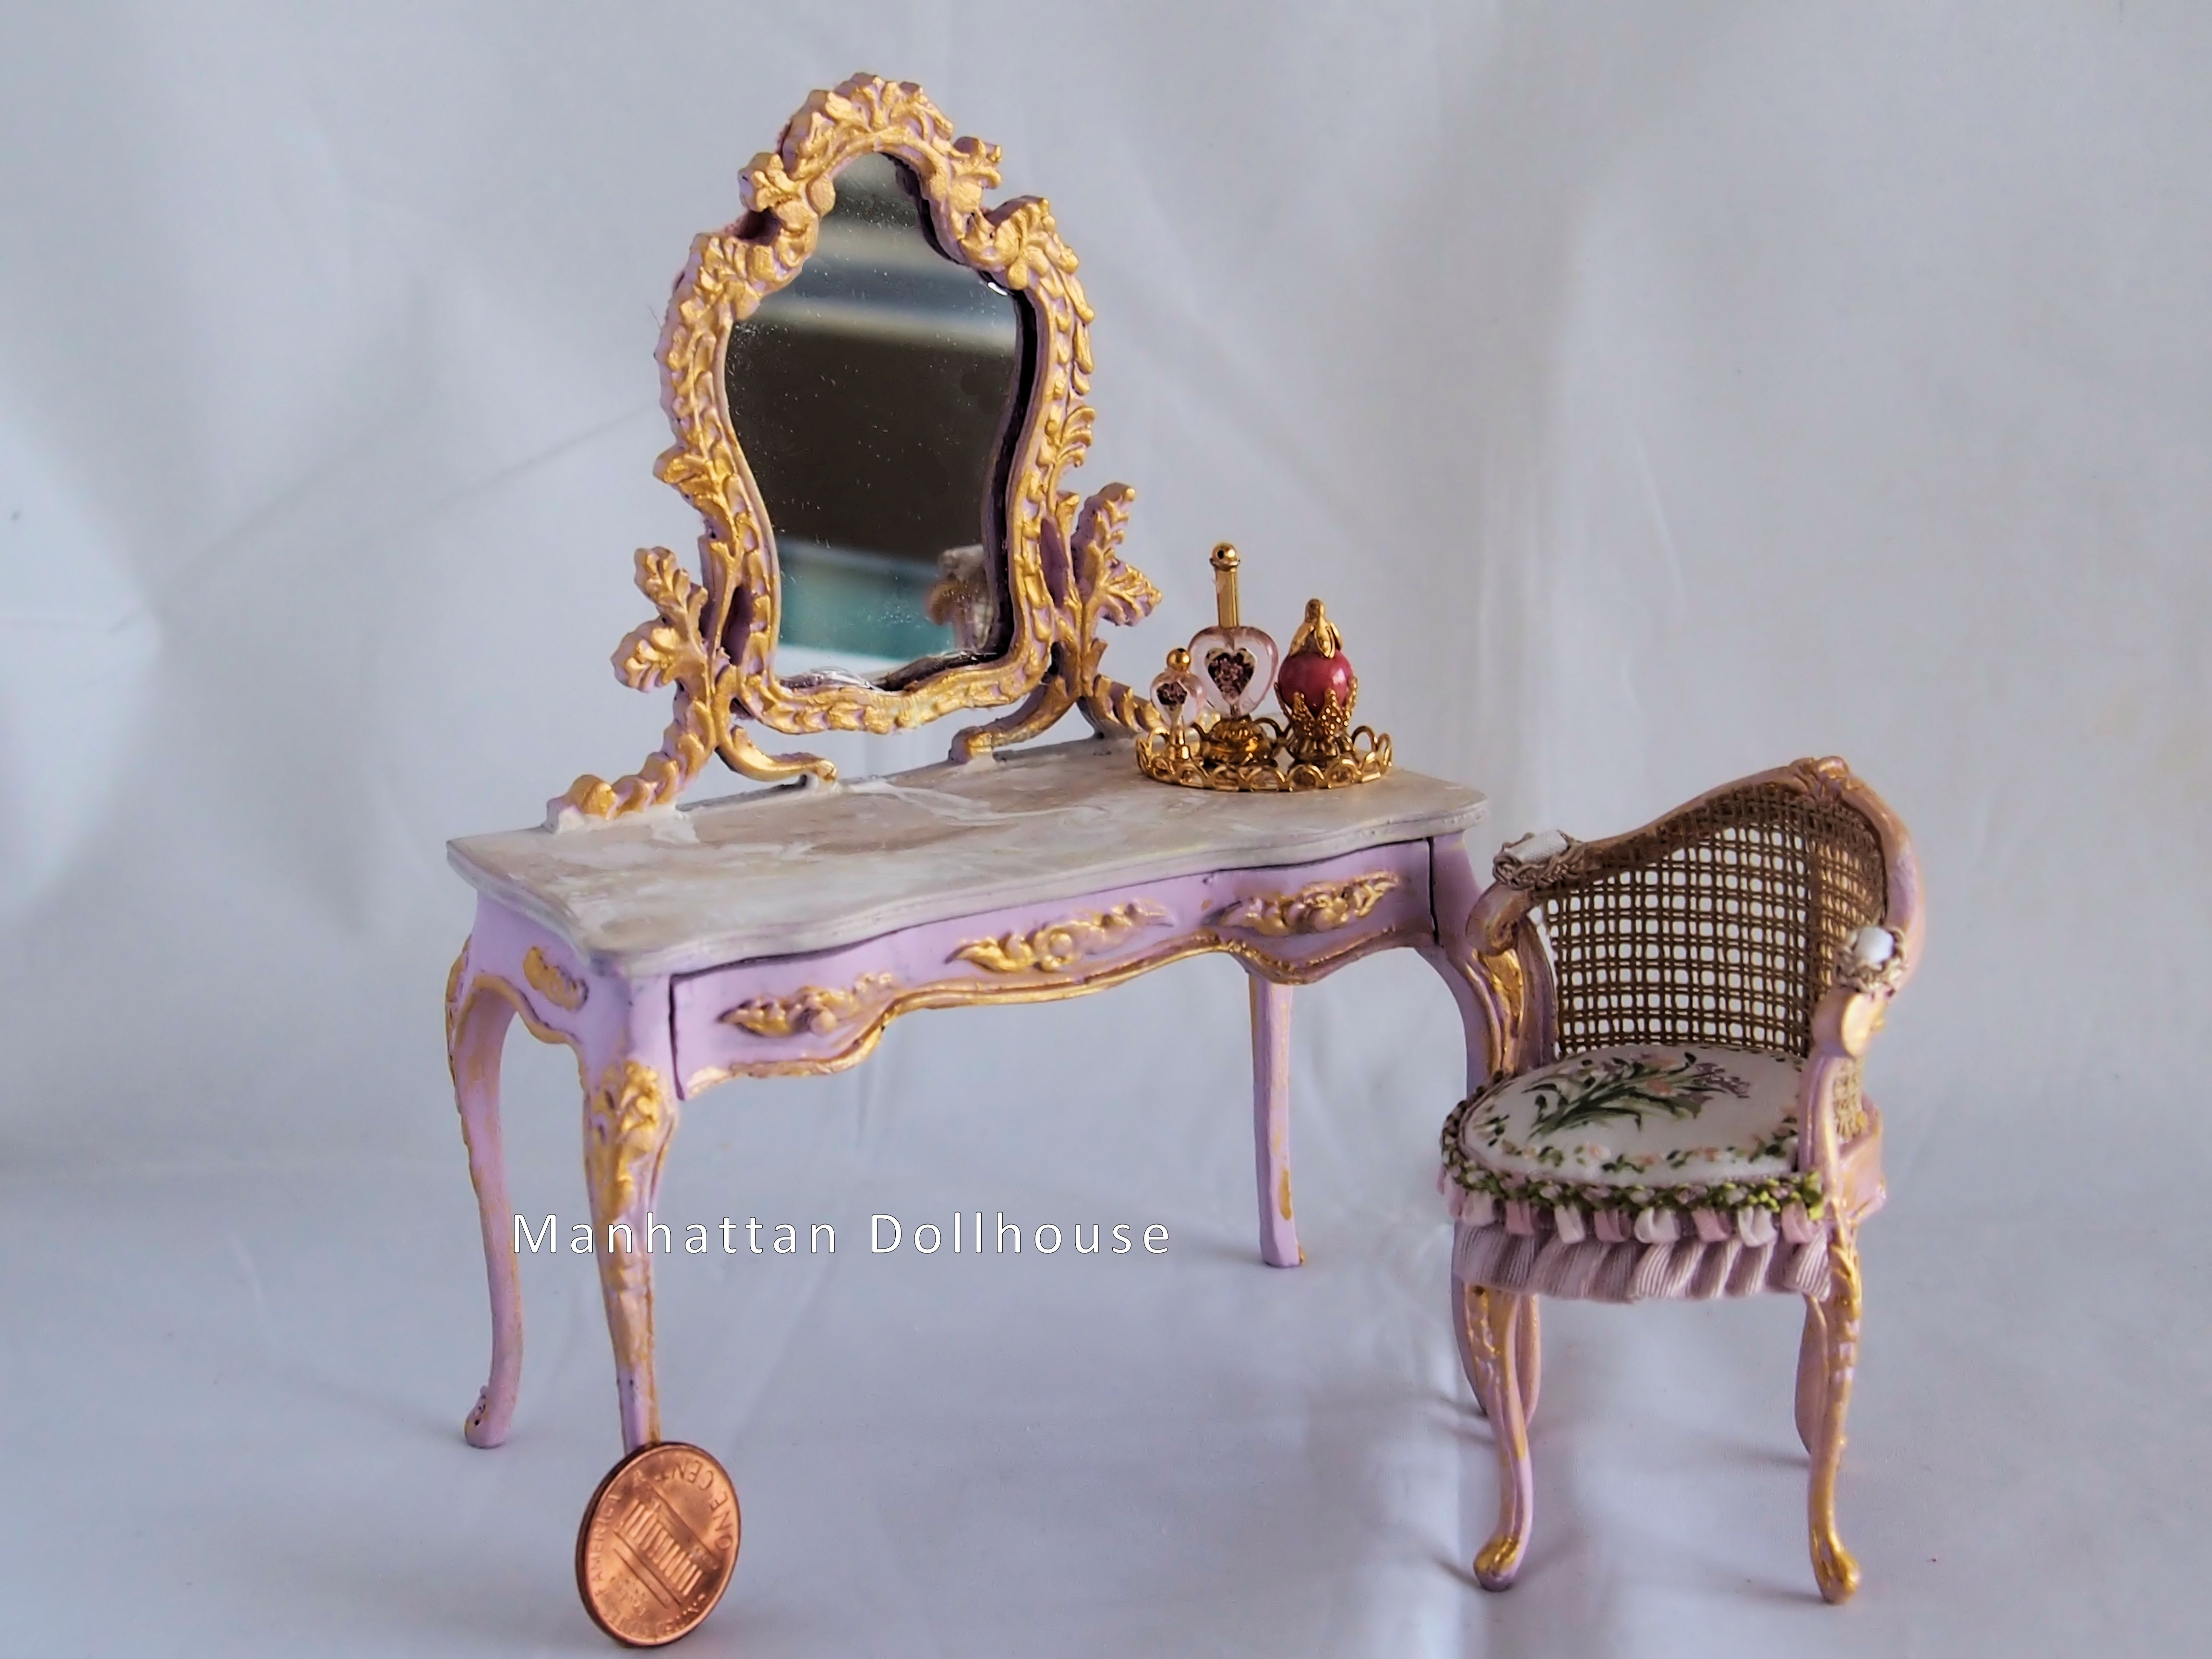 Miniature La s Vanity Table and Chair Set from Spain $275 00